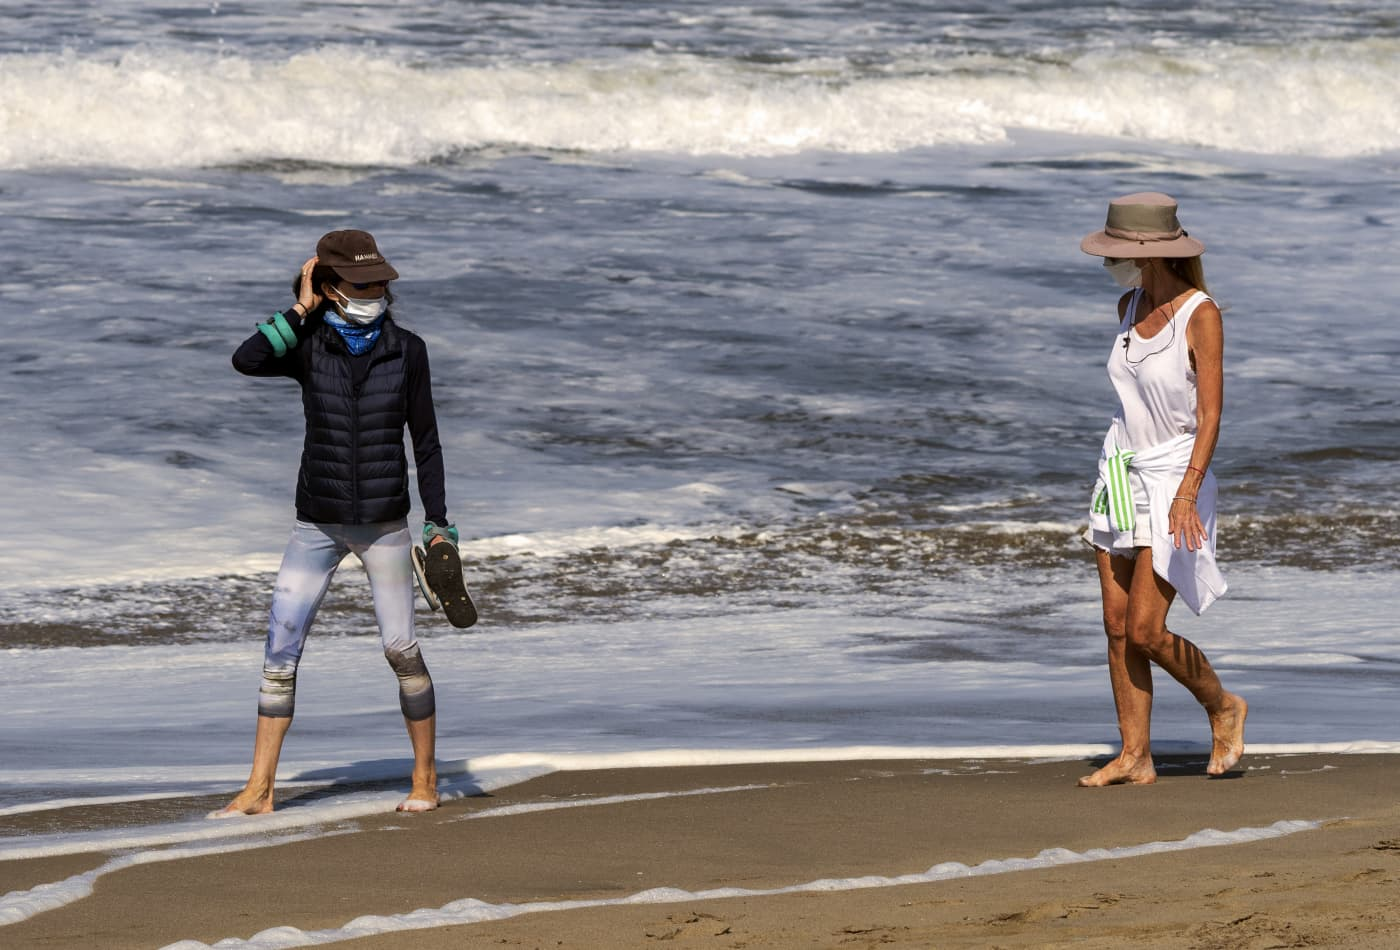 How to stay safe if going to park or beach during Covid-19 pandemic